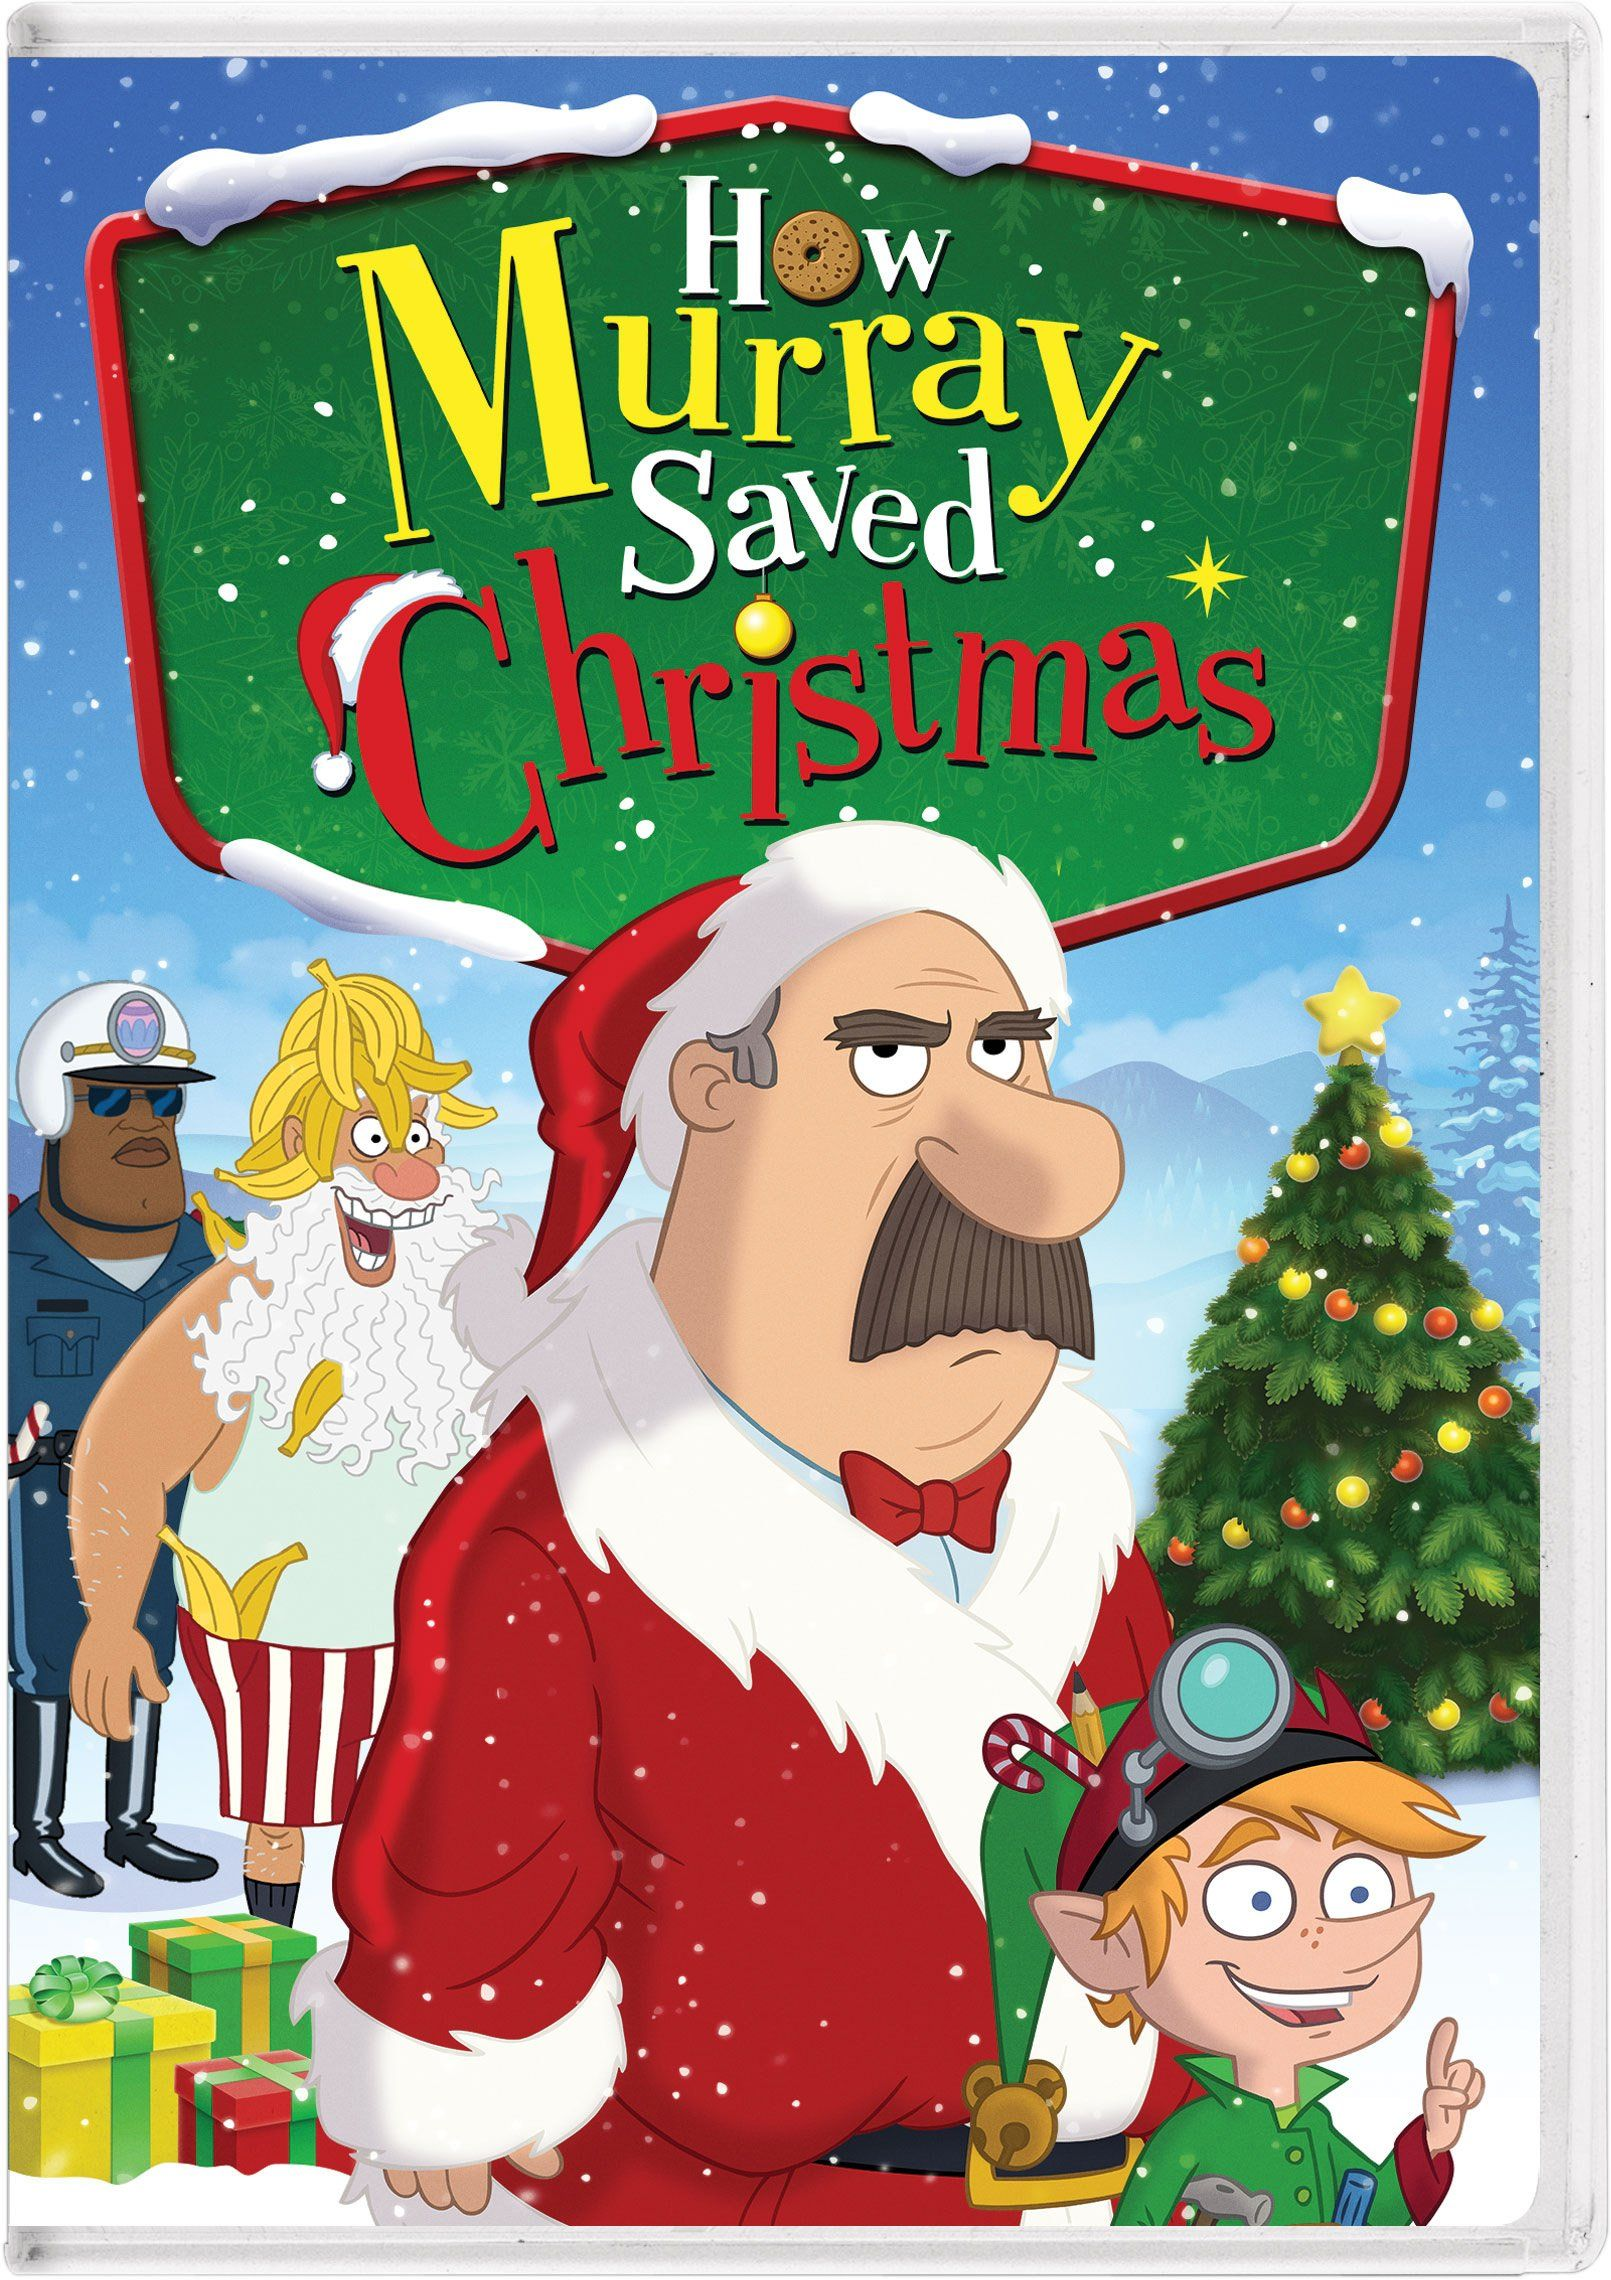 how murray saved christmas december 16 2014 2014 dvdblu ray releases - Christmas Day Movie Releases